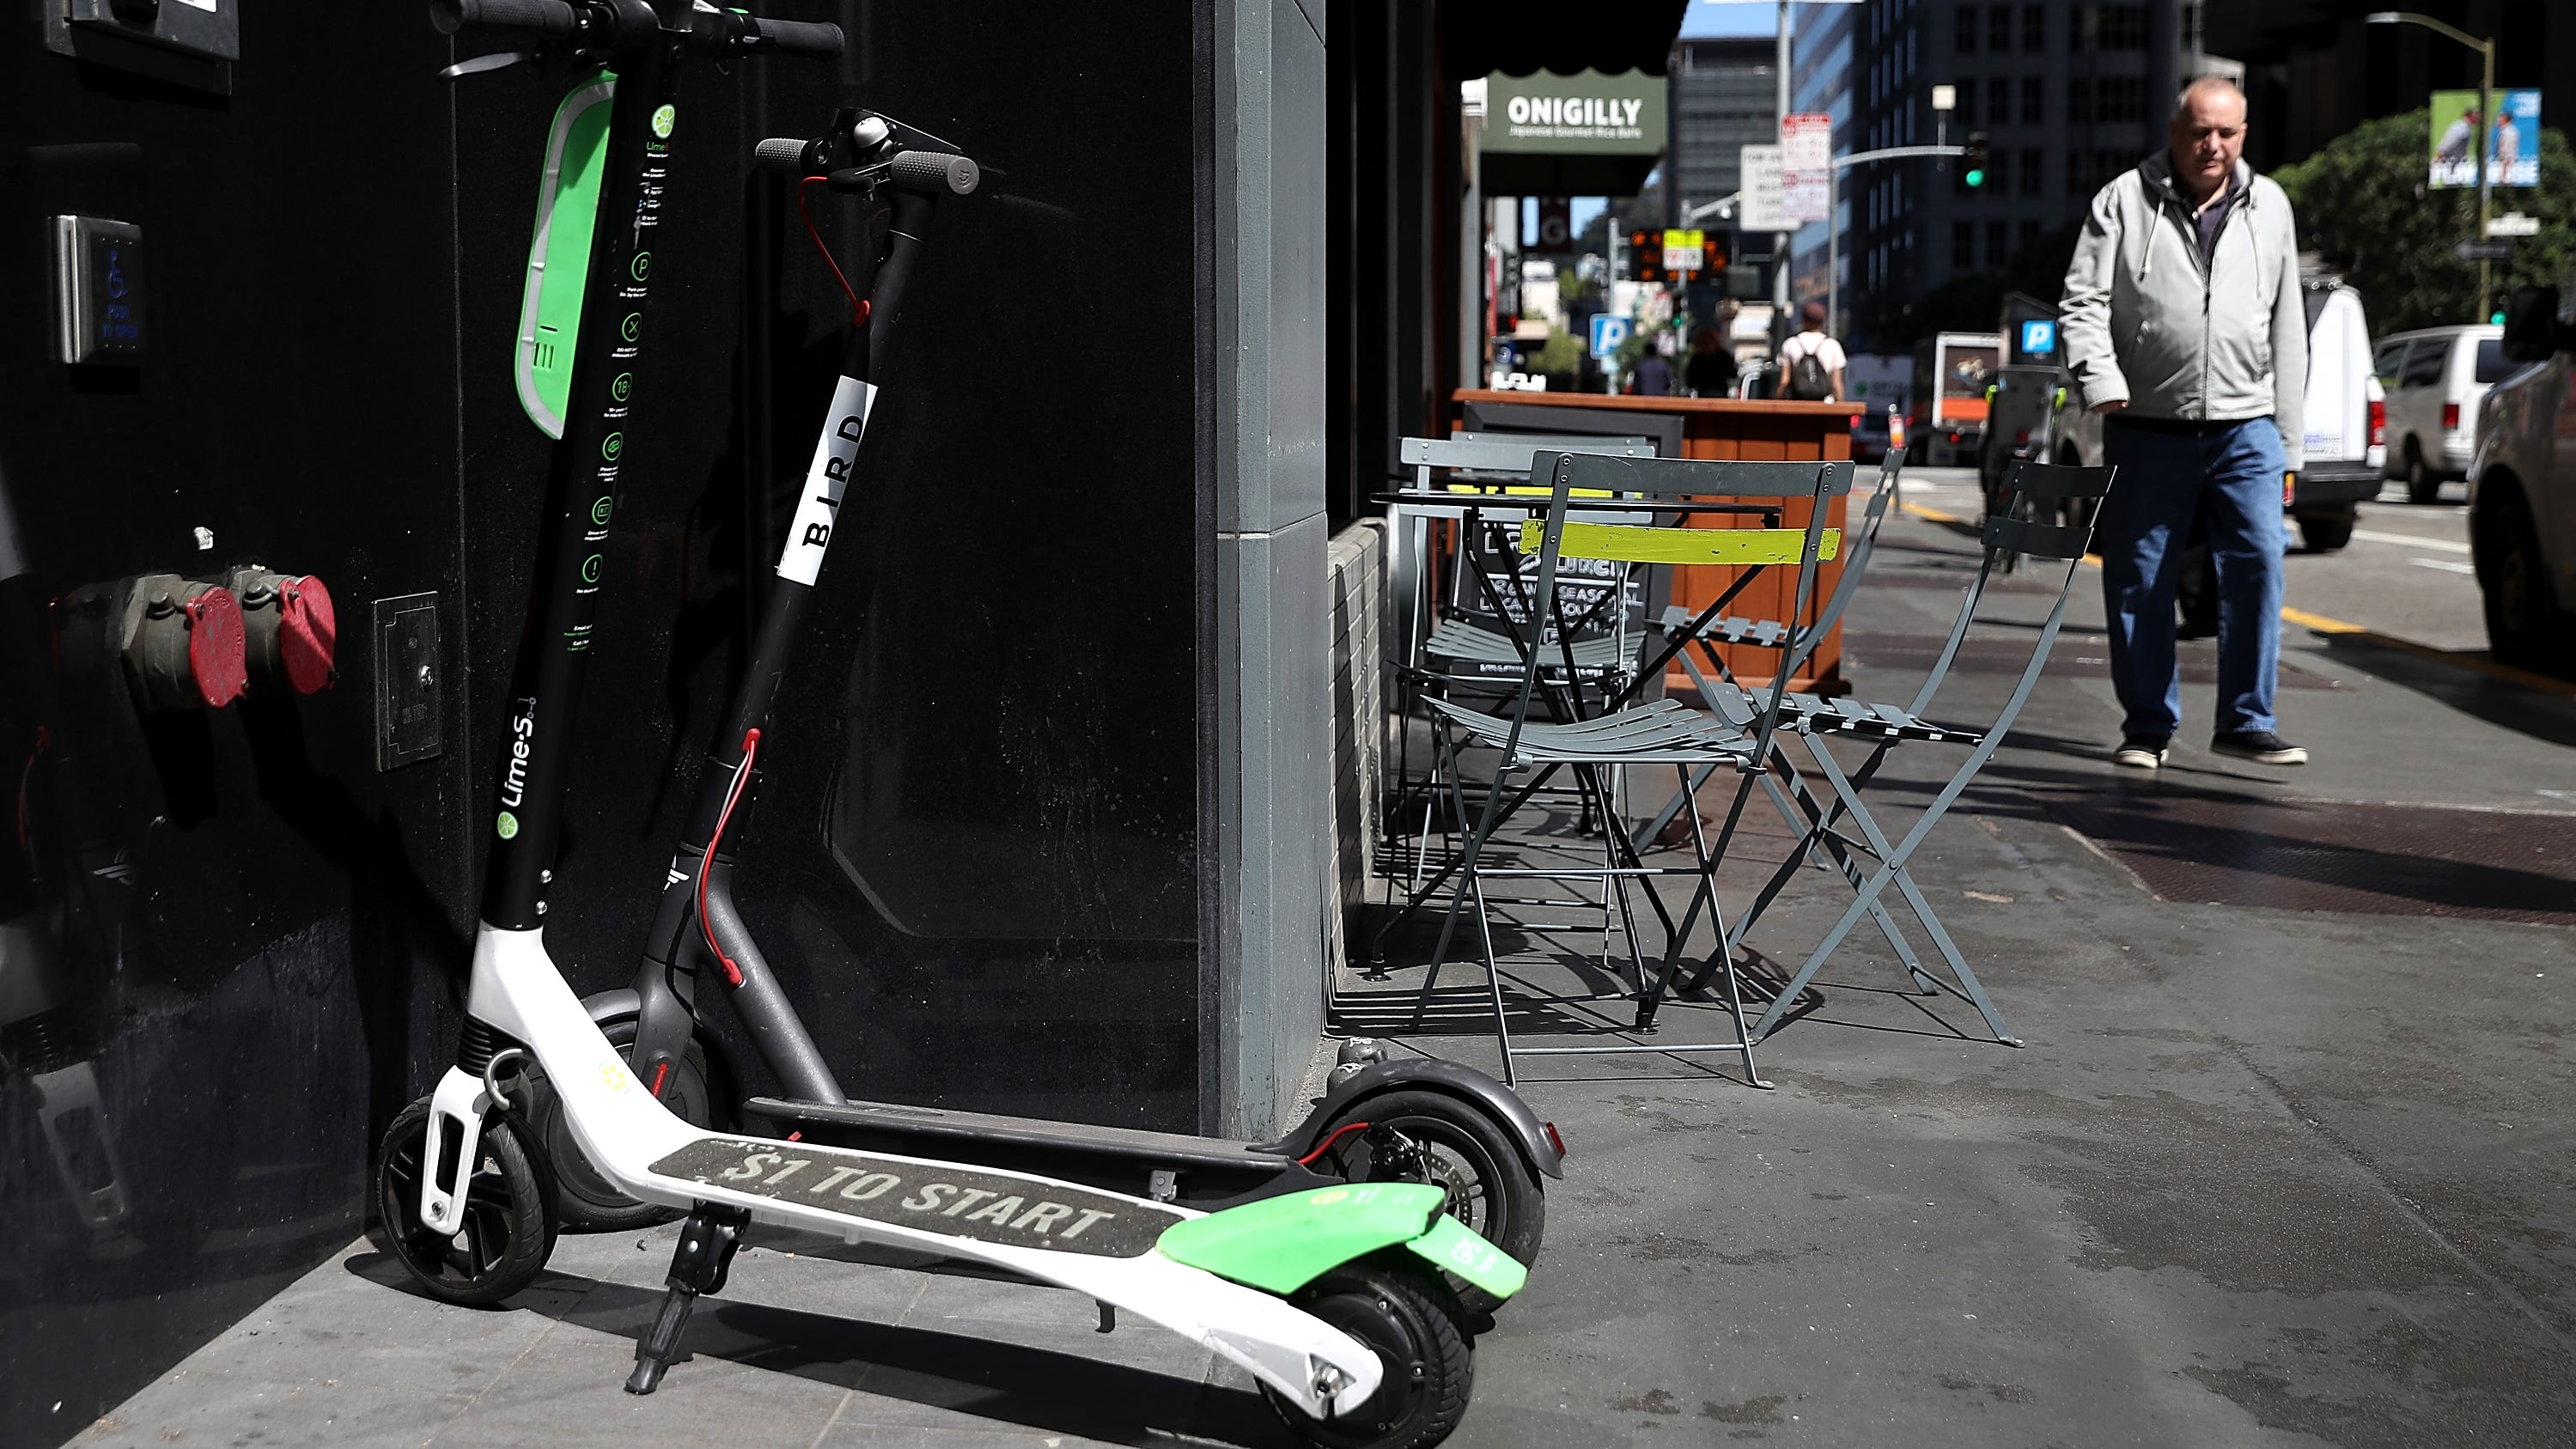 What to do about scooters? Officials try unique solutions as problems go on